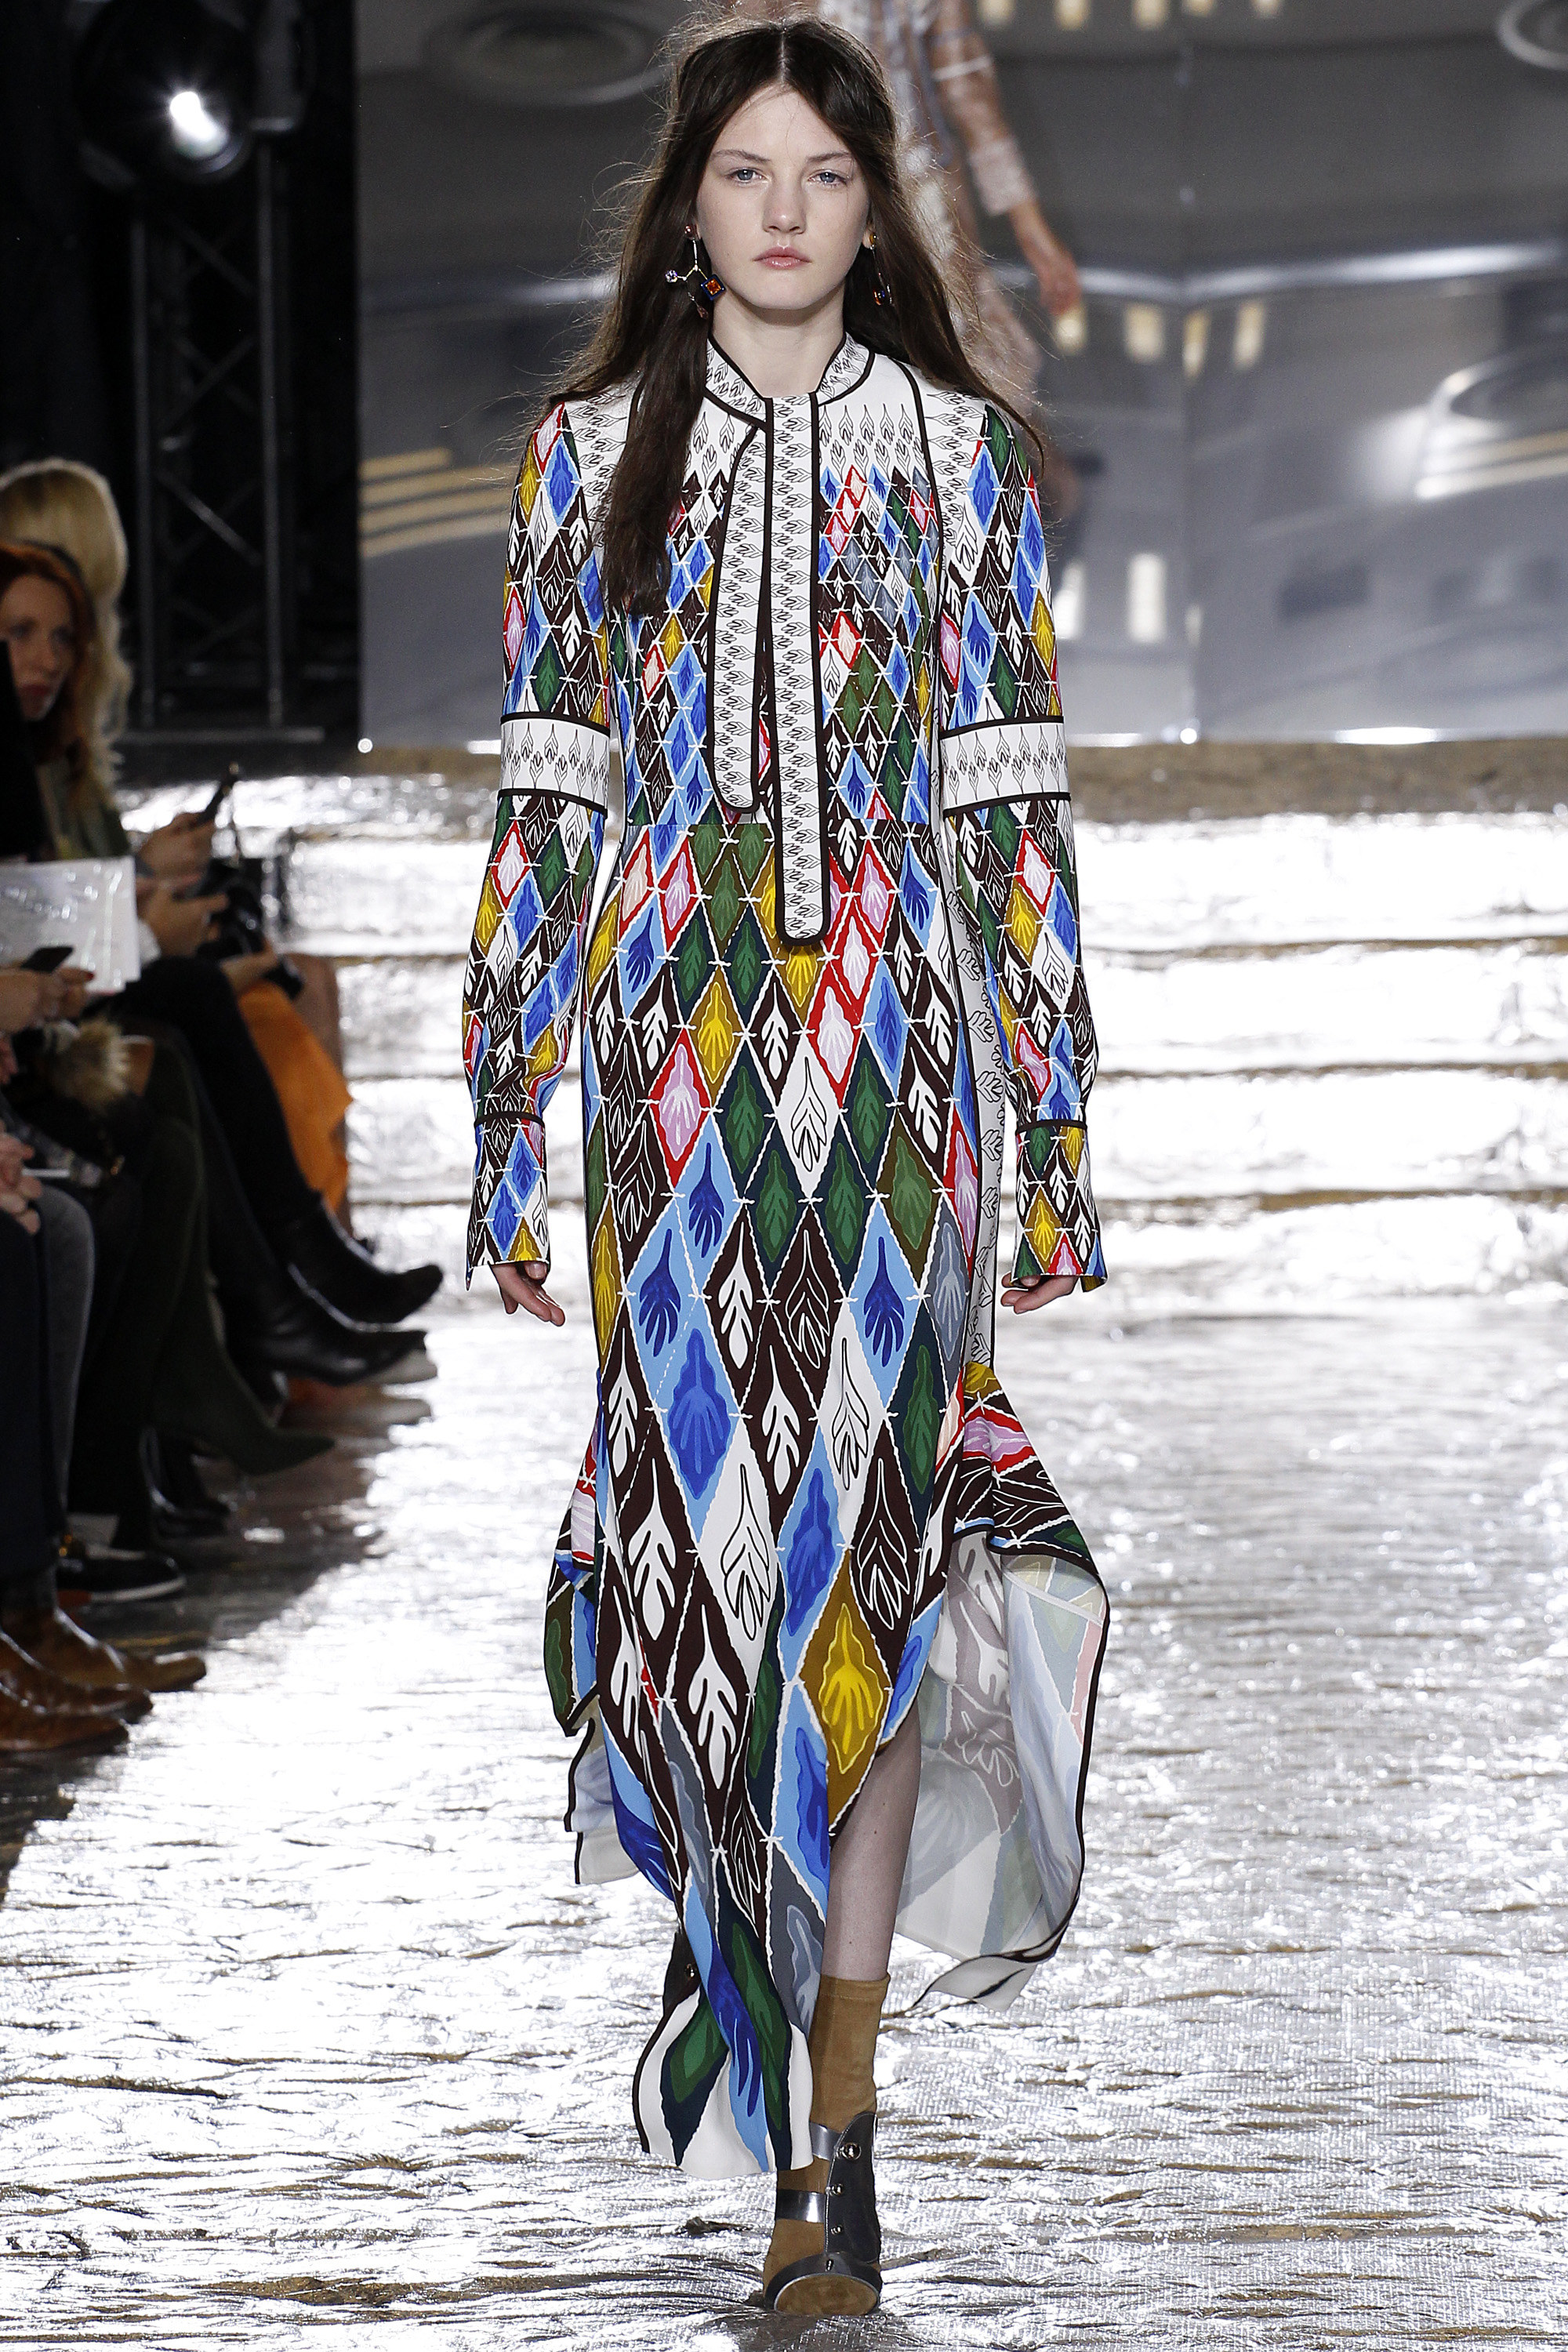 Peter-Pilotto-Autumn-Winter-Fall-2016-London-Fashion-Week-15.jpg